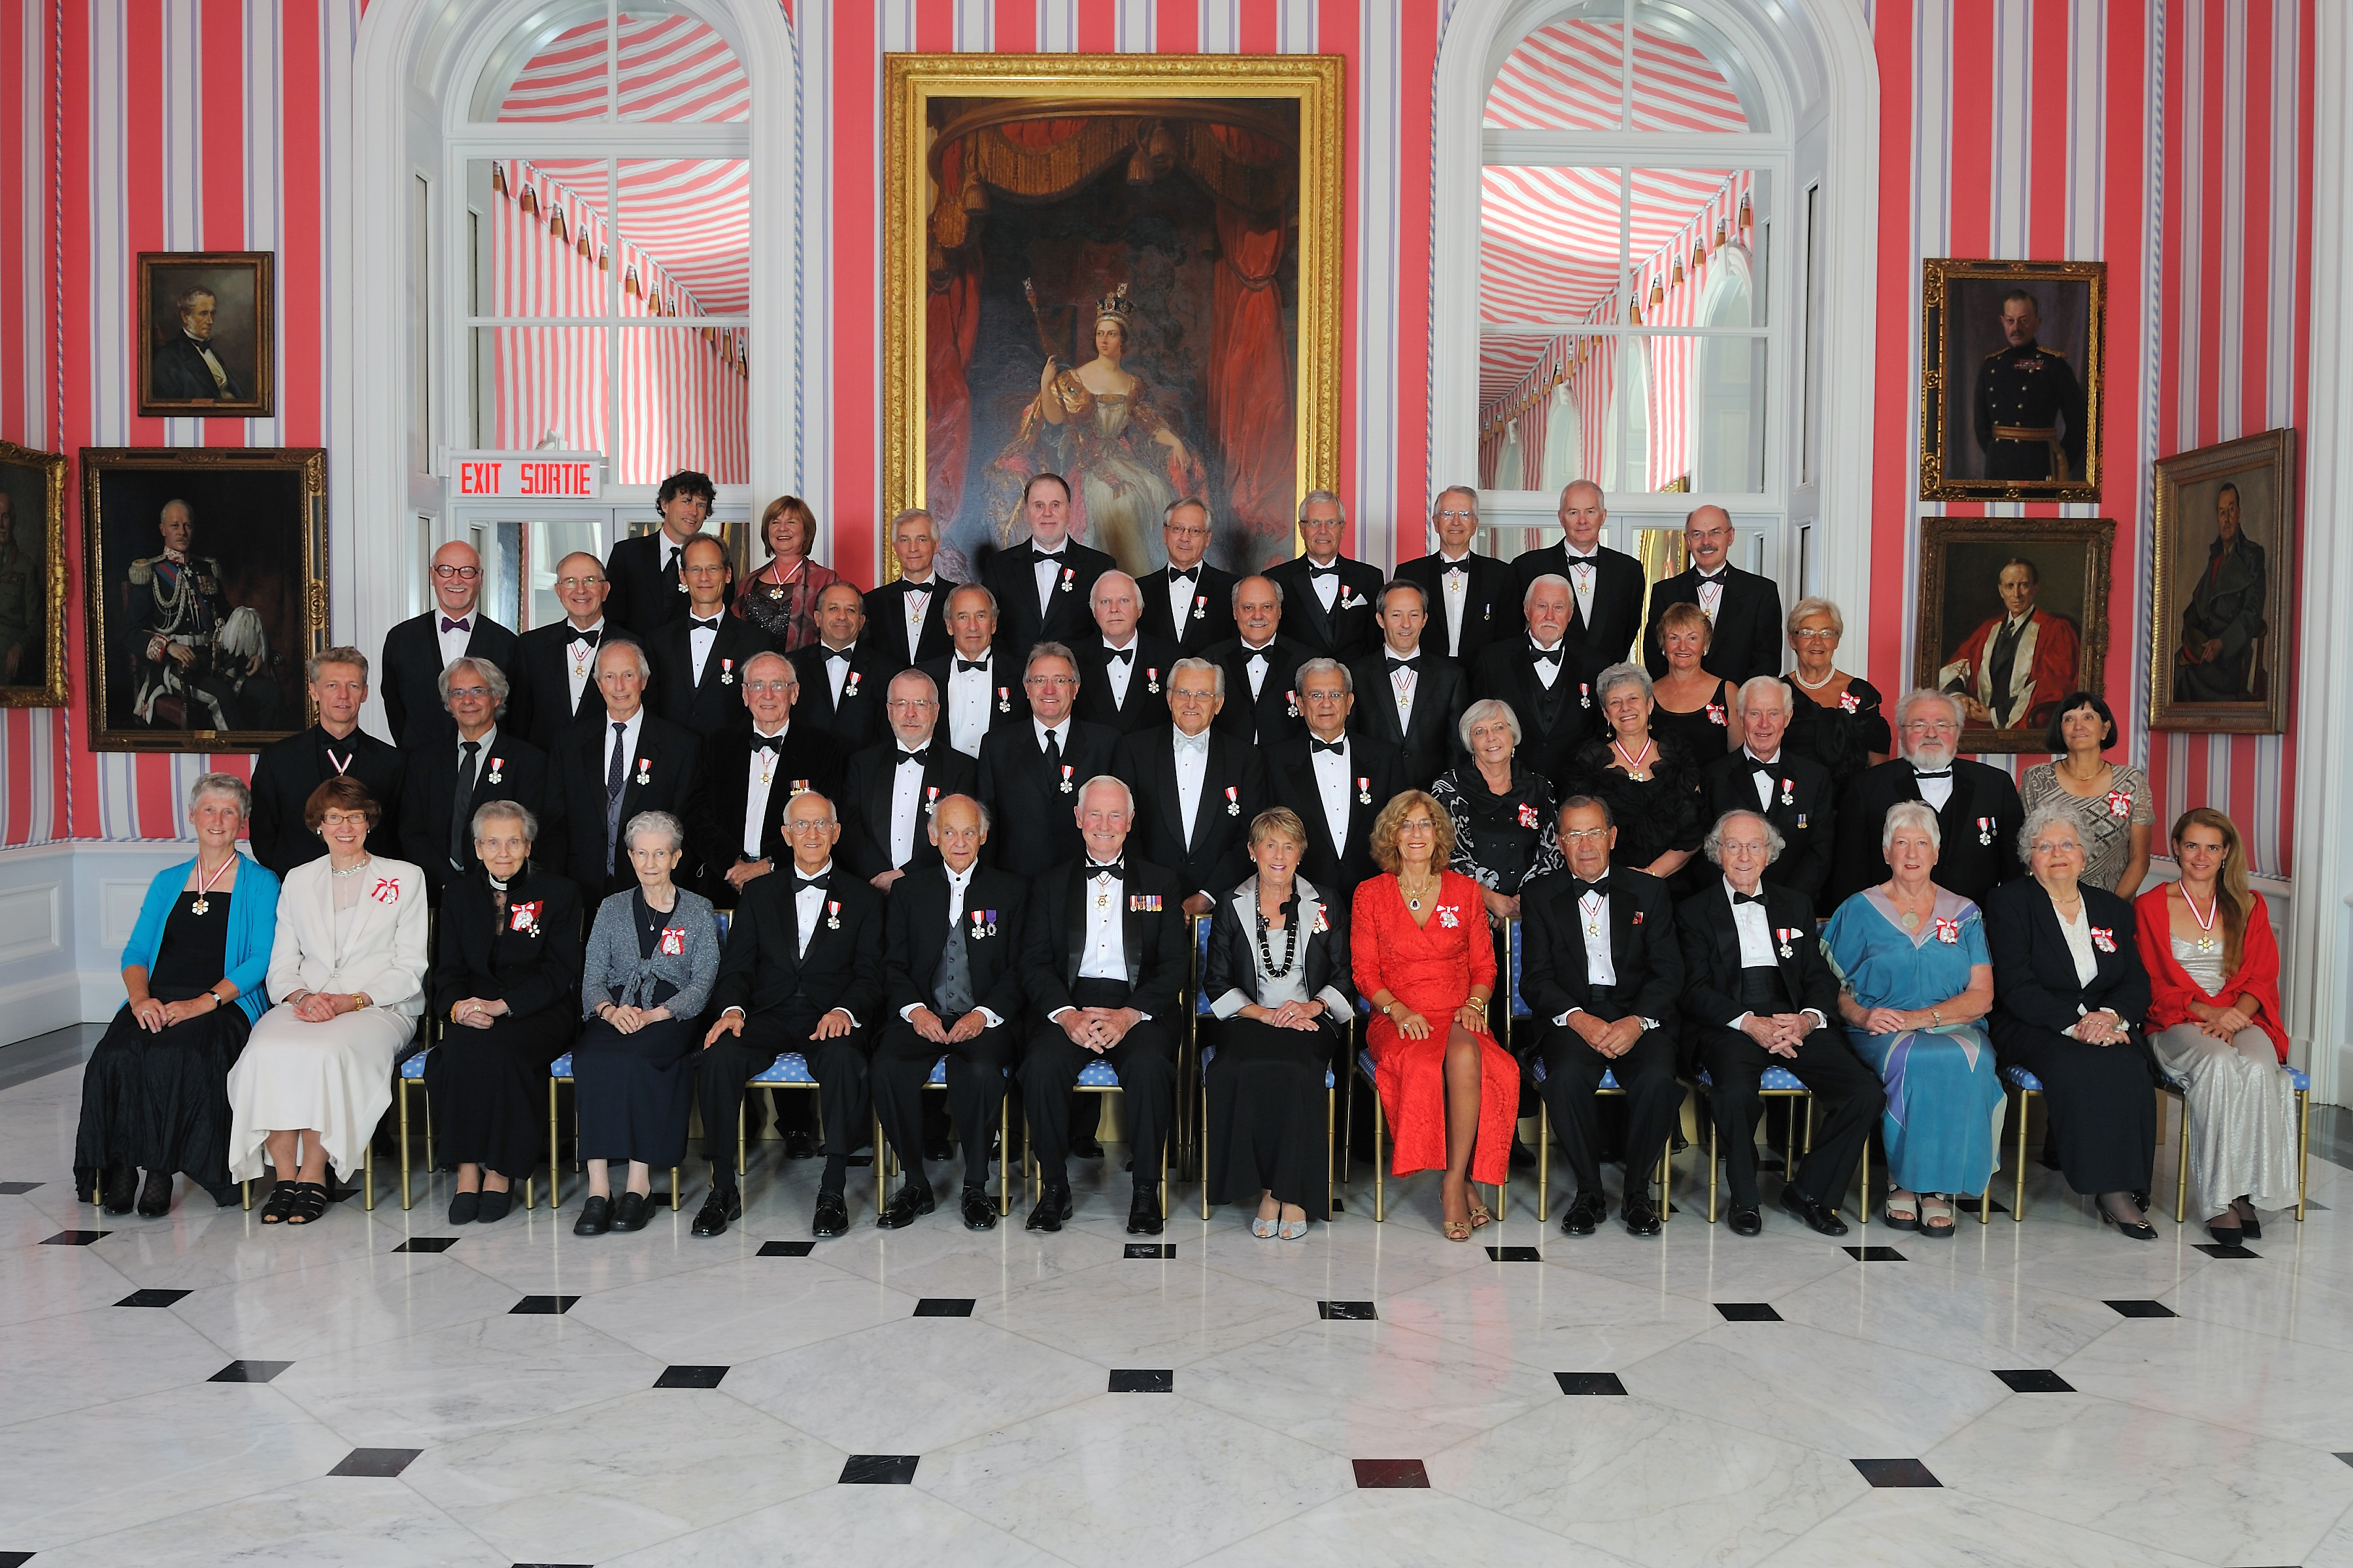 Their Excellencies are pictured with the 45 recipients that were invested into the Order of Canada on September 16, 2011.